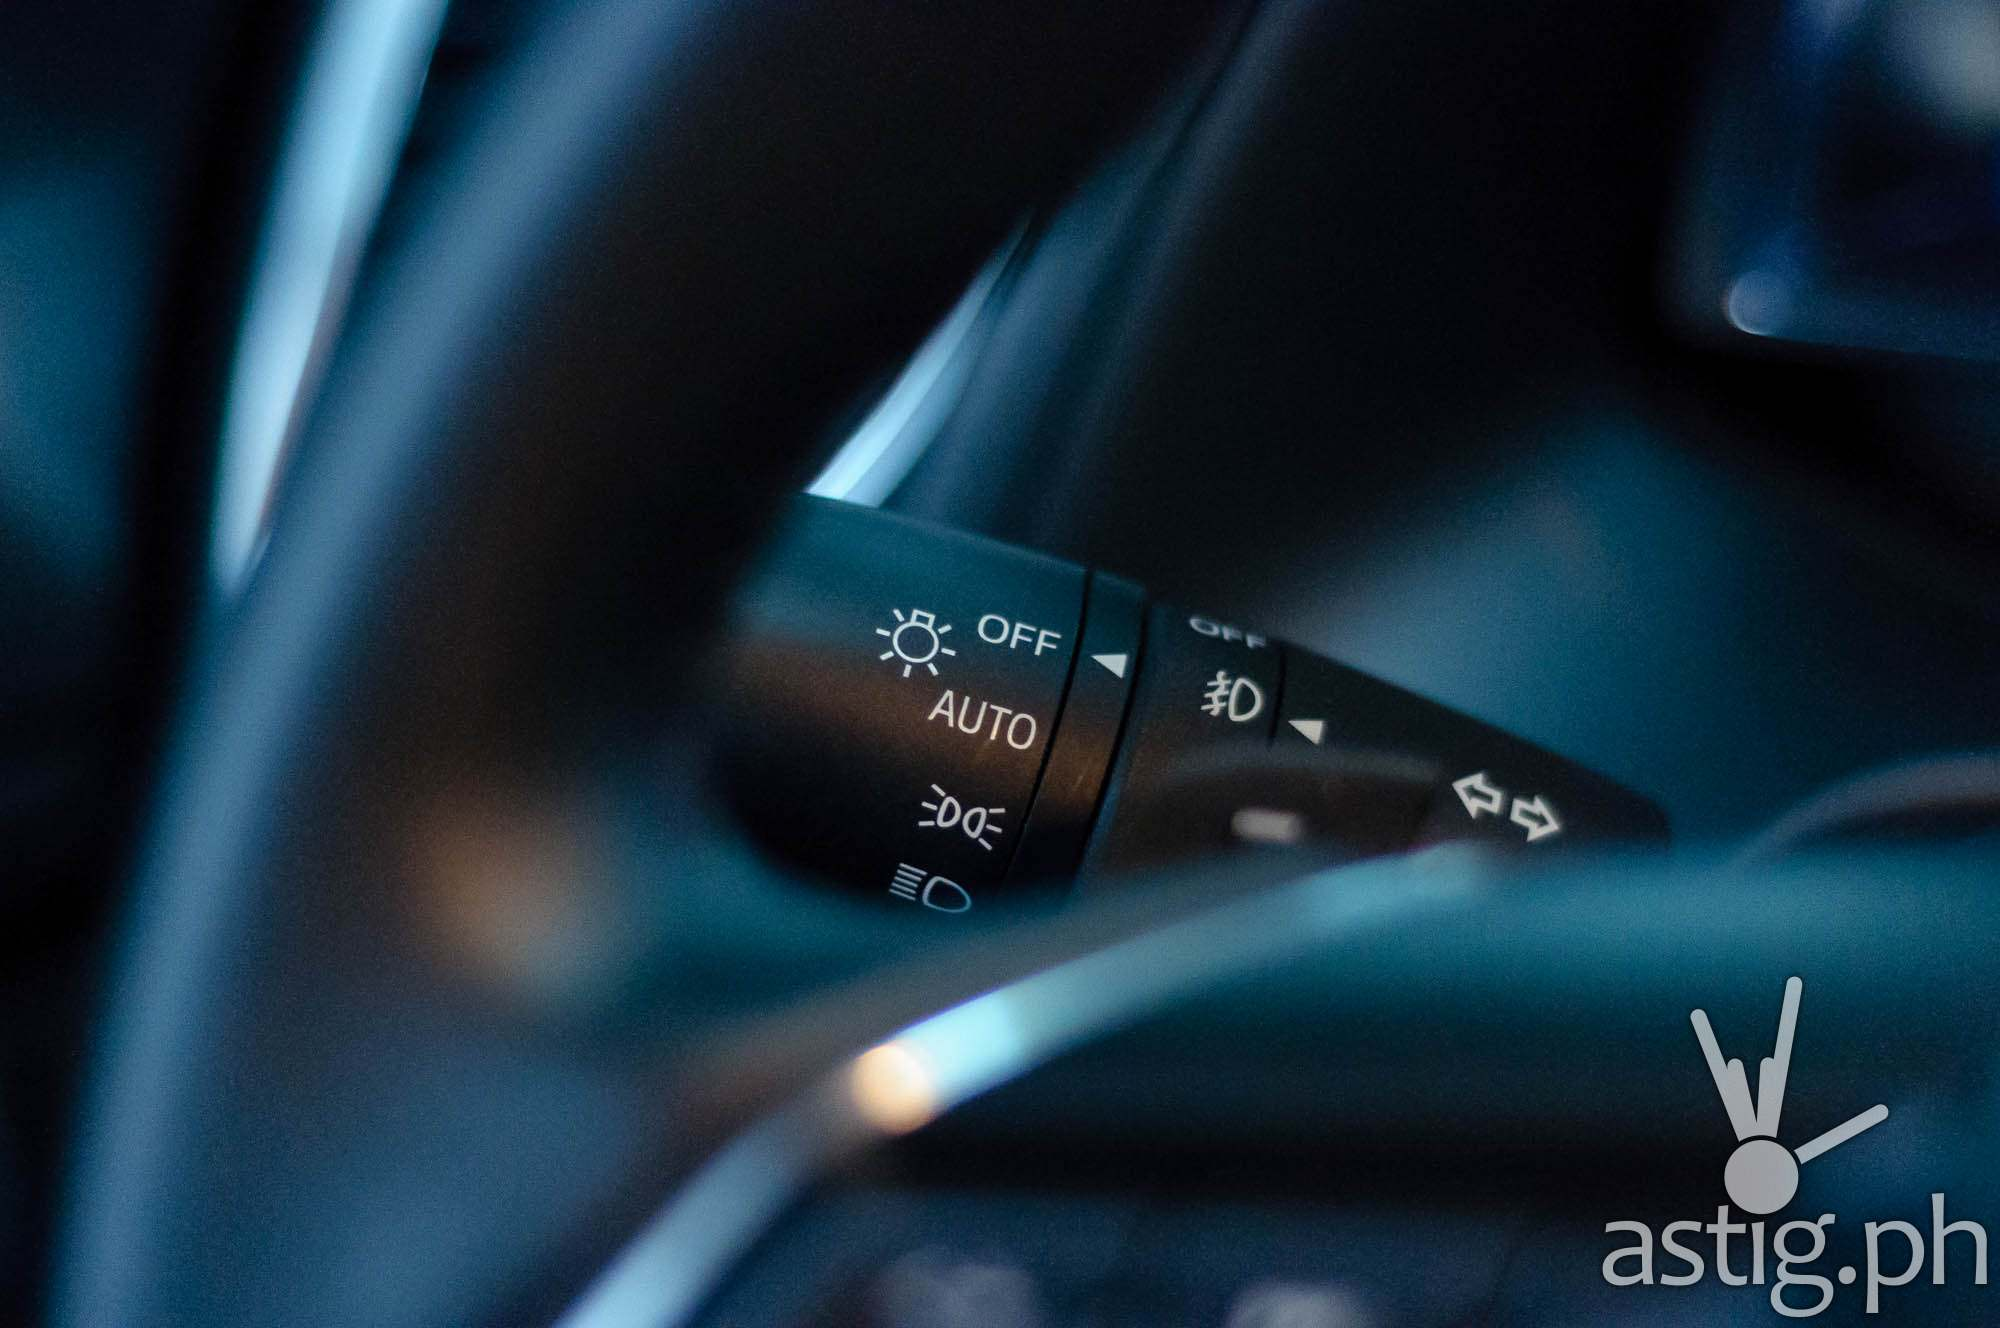 Light sensors automatically activate or deactivate the headlights depending on the situation - Mazda3 2.0 Sedan 2017 Skyactiv-R